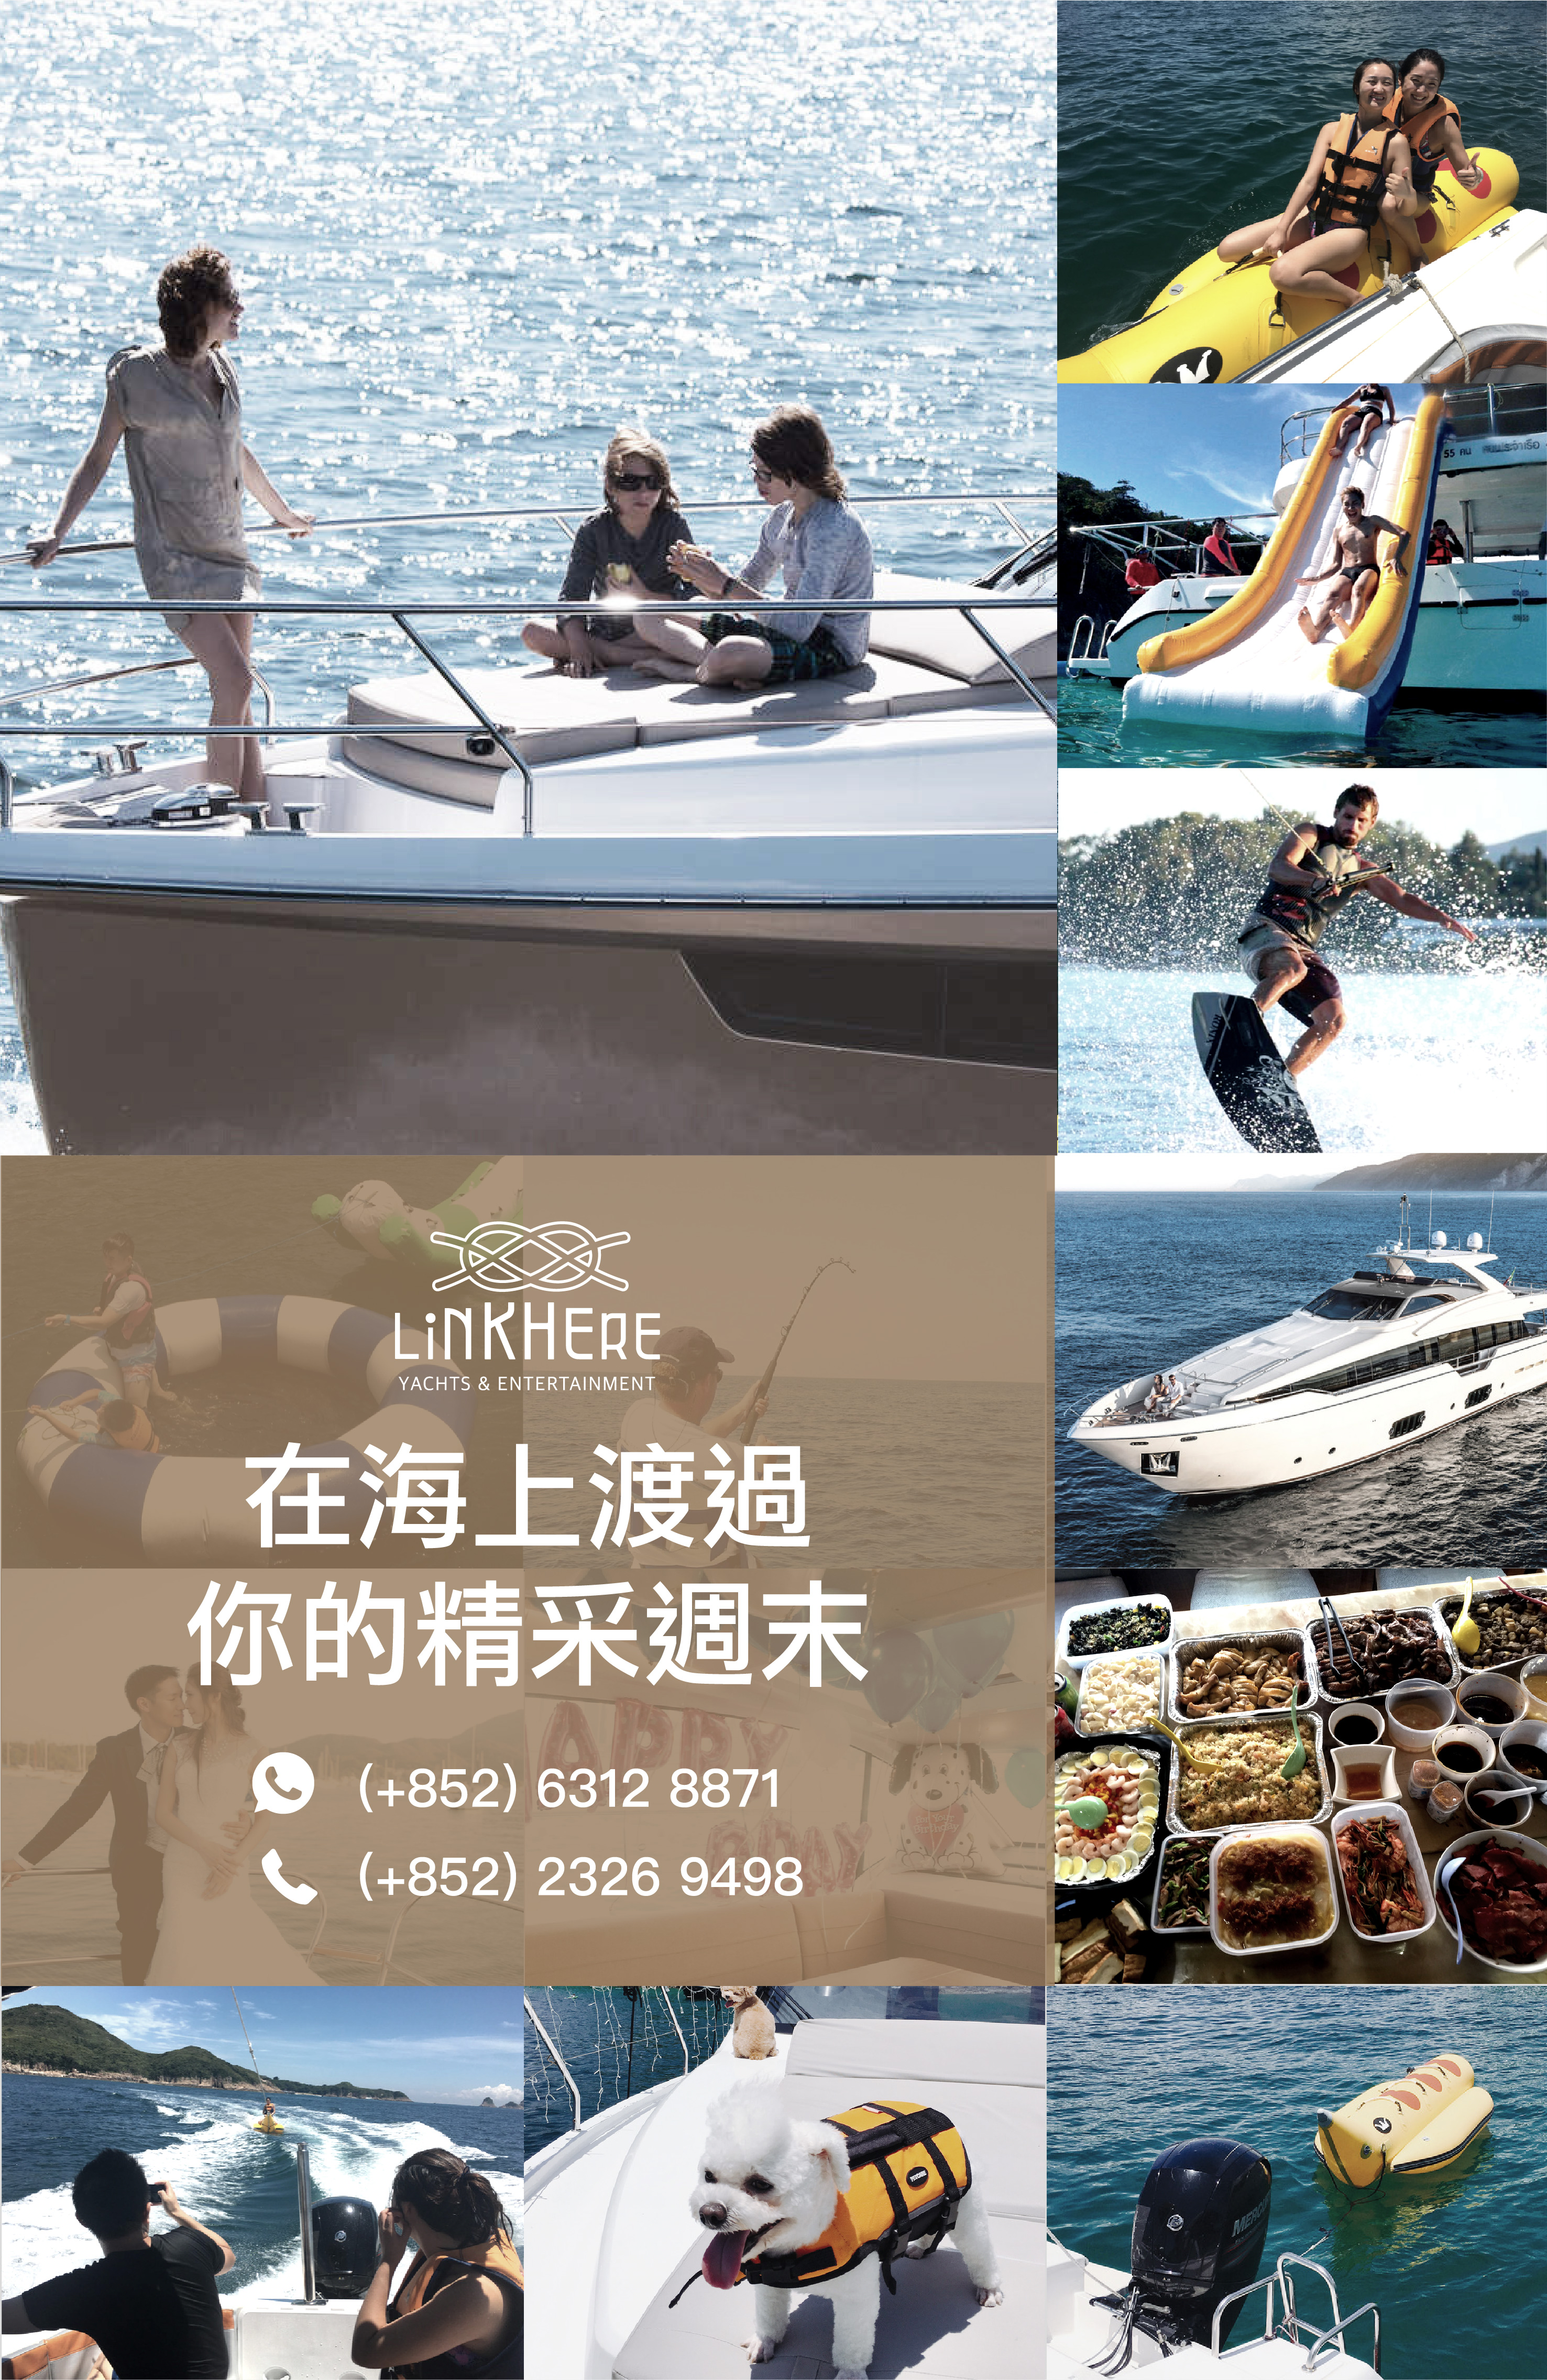 55 Au LiNKHERE 在海上渡過 你的精采週末 (+852) 6312 8871 YACHTS & ENTERTAINMENT (+852) 2326 9498,water transportation,water,boat,advertising,boating